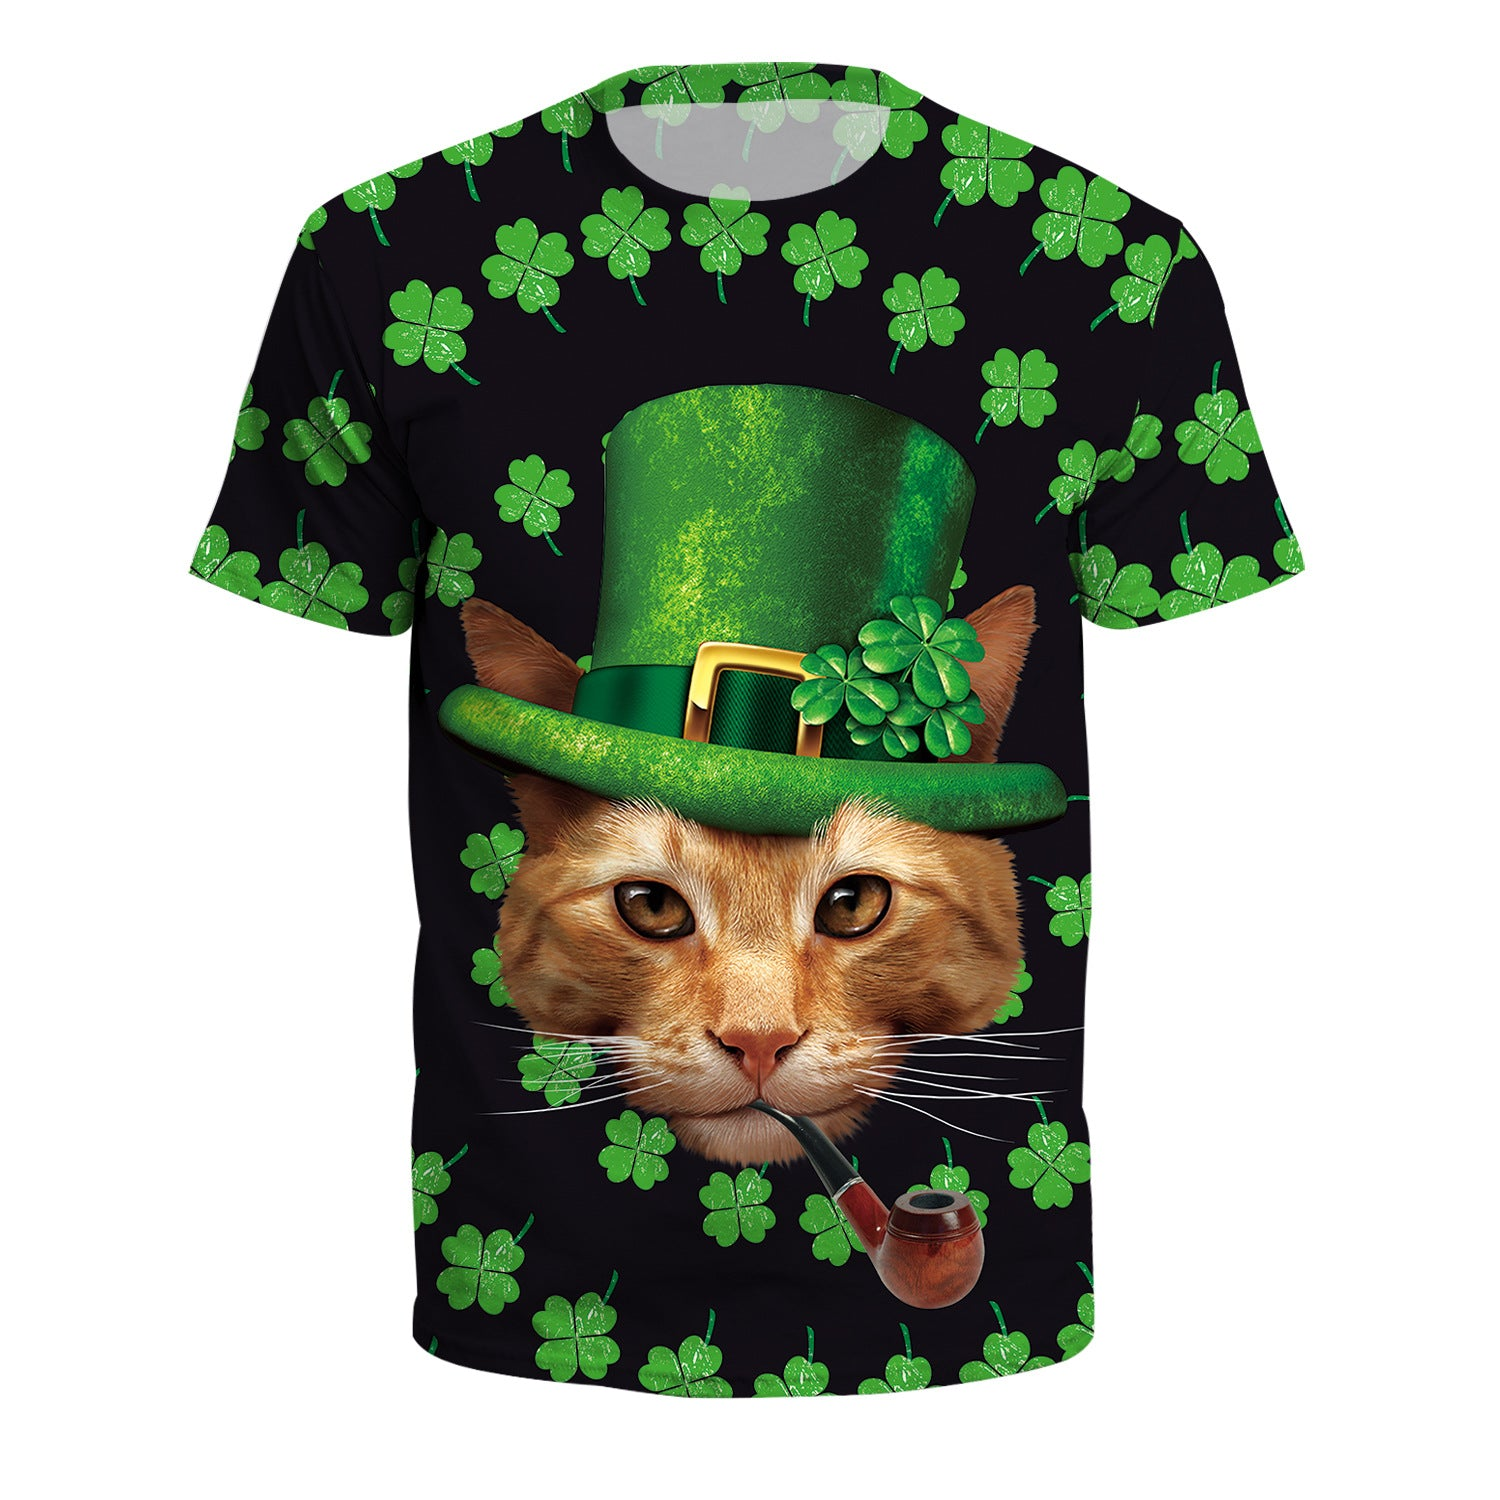 3D St. Patrick's Day Four-leaf Clovers Cat Print Shamrock Green T-shirt  Tee Tops